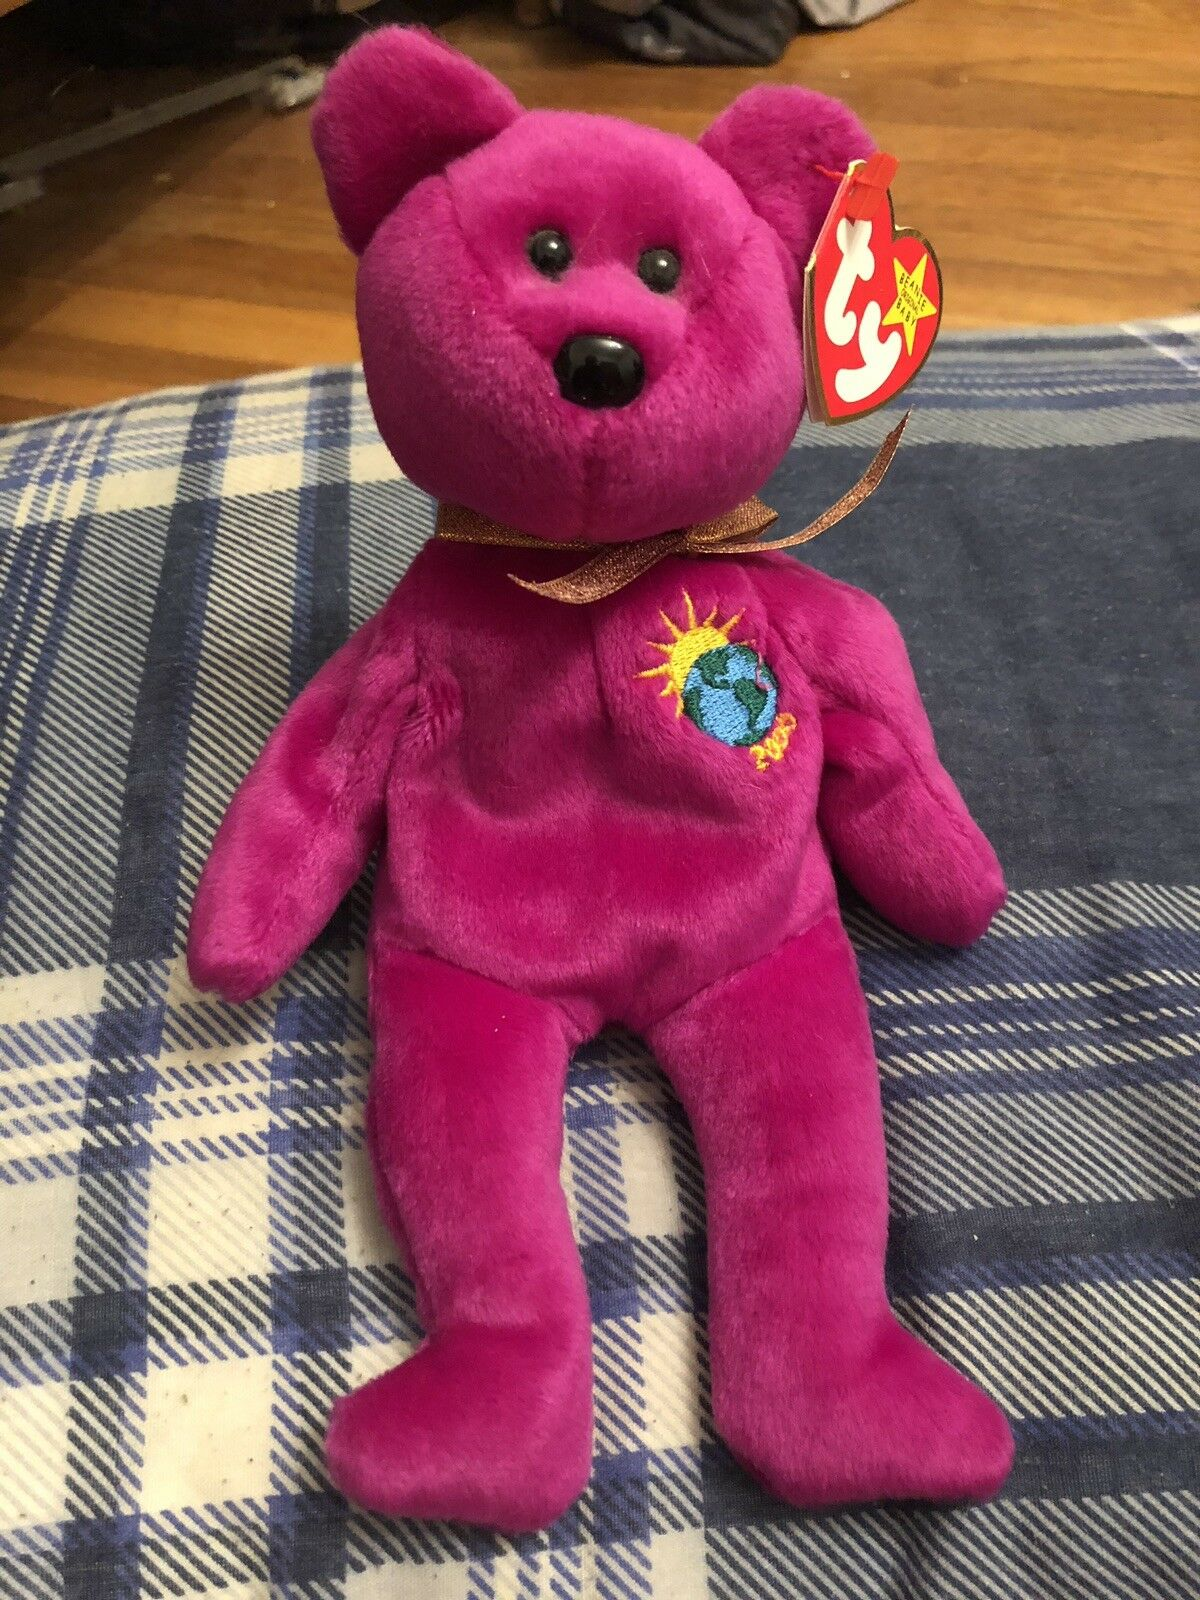 Millennium TY Beanie Baby With Errors